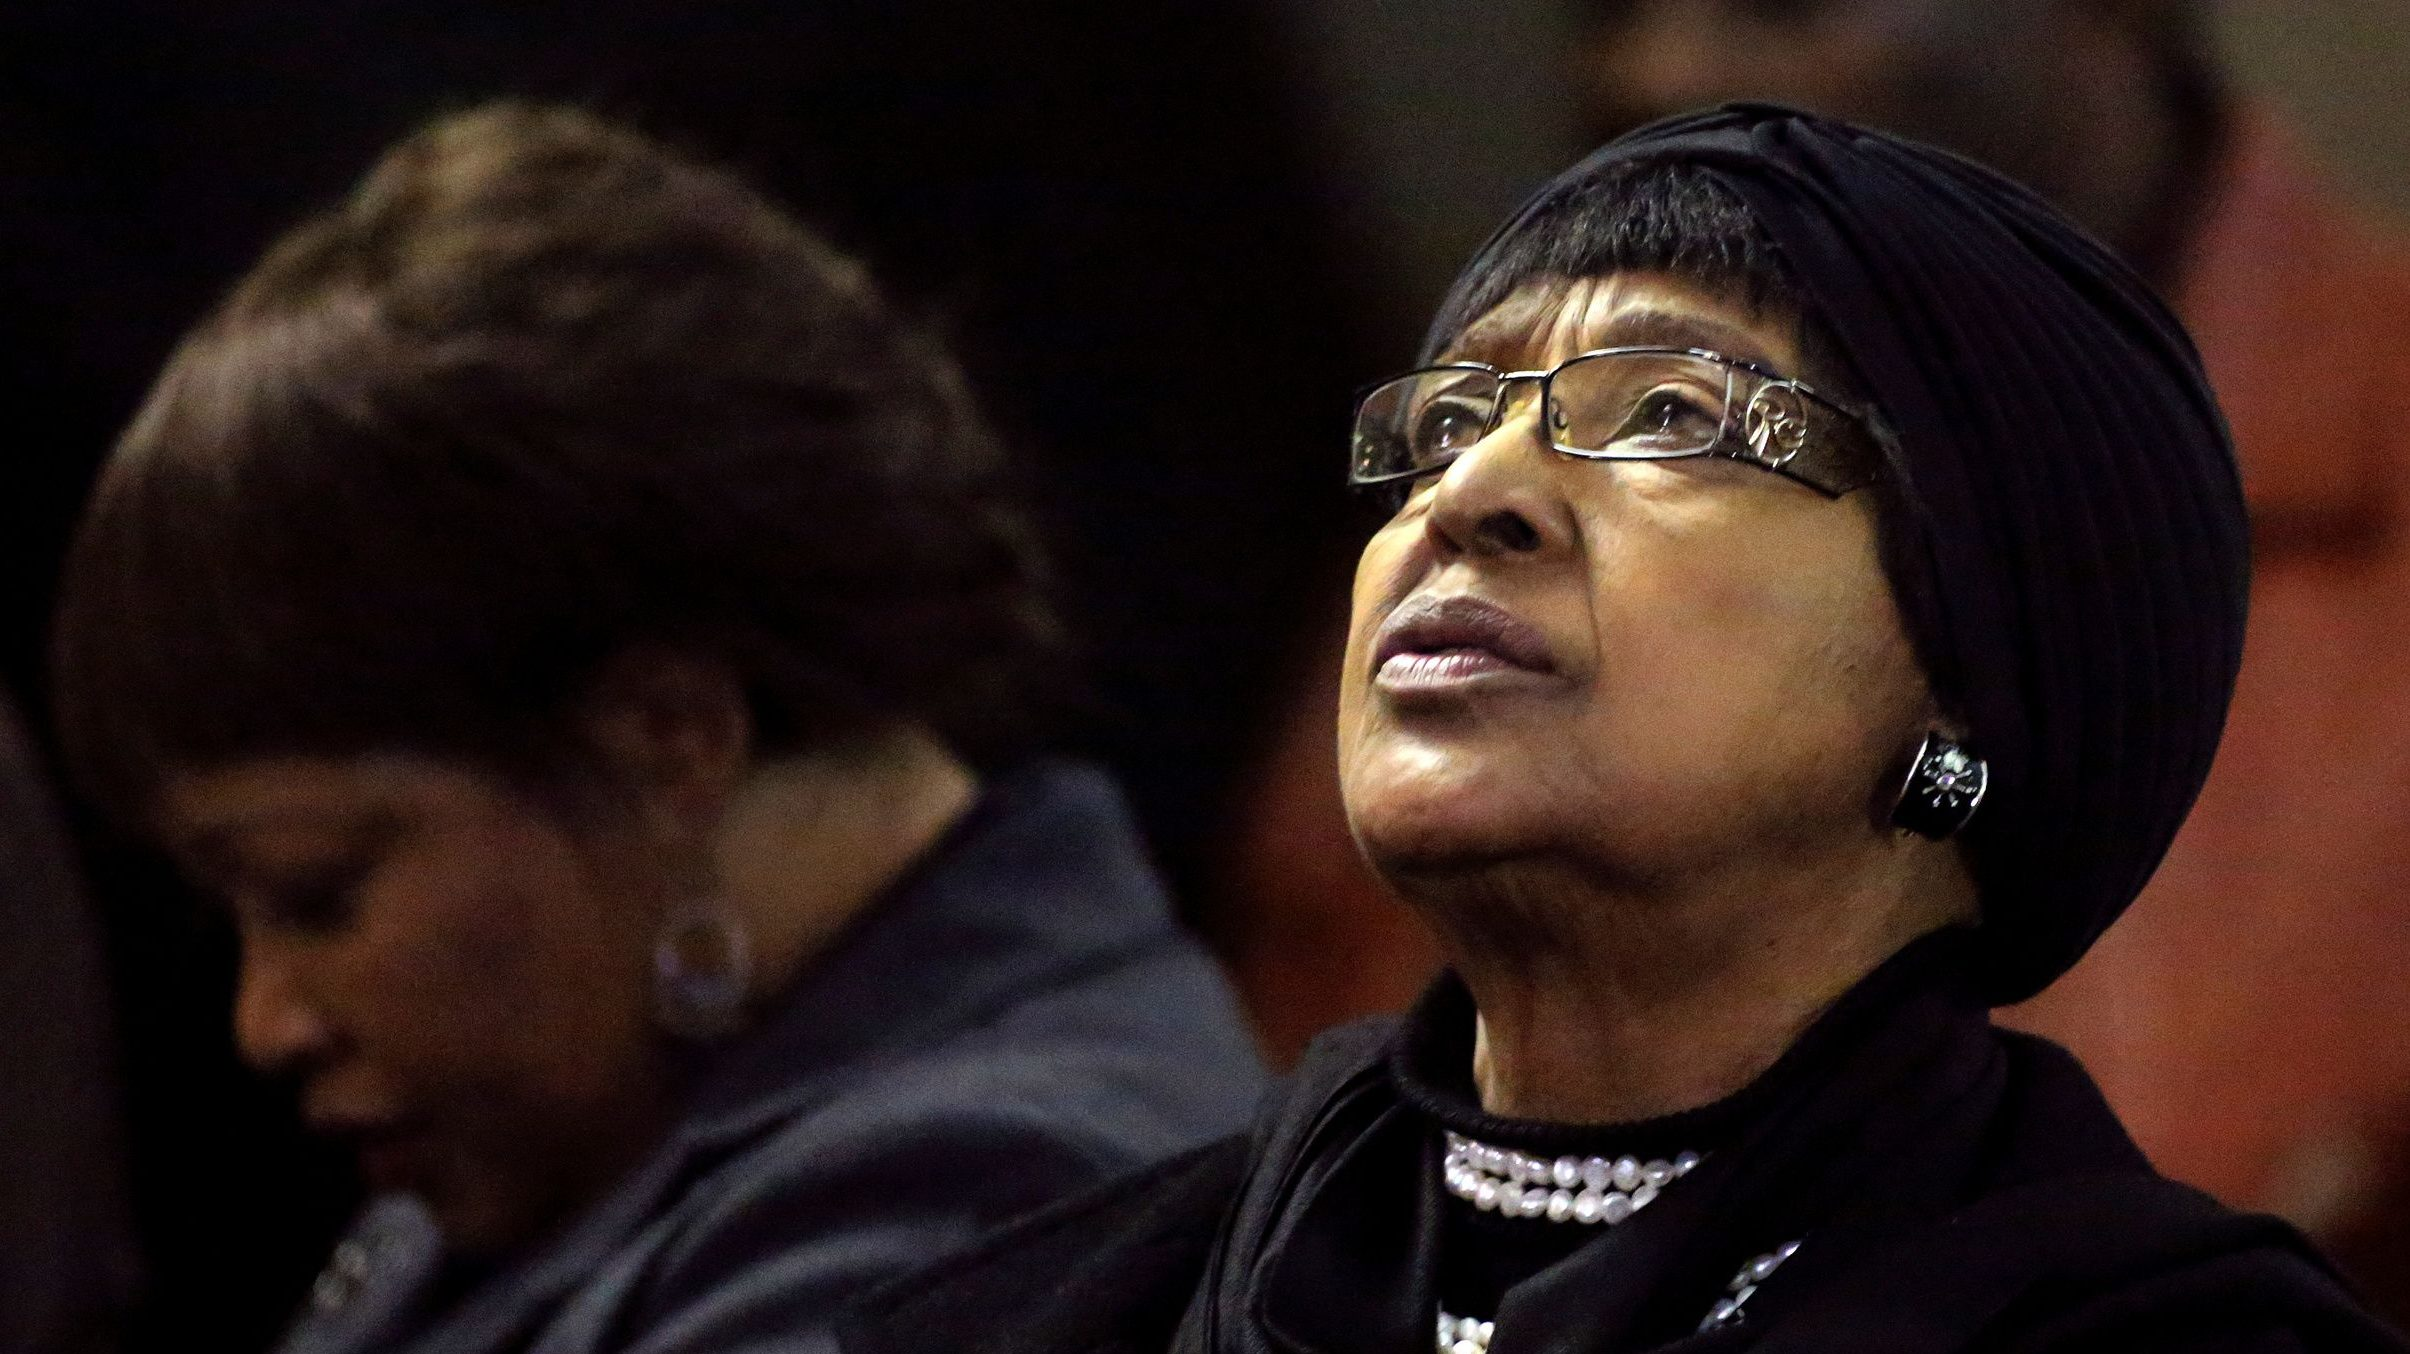 Winnie Mandela, controversial activist and politician, dies at 81